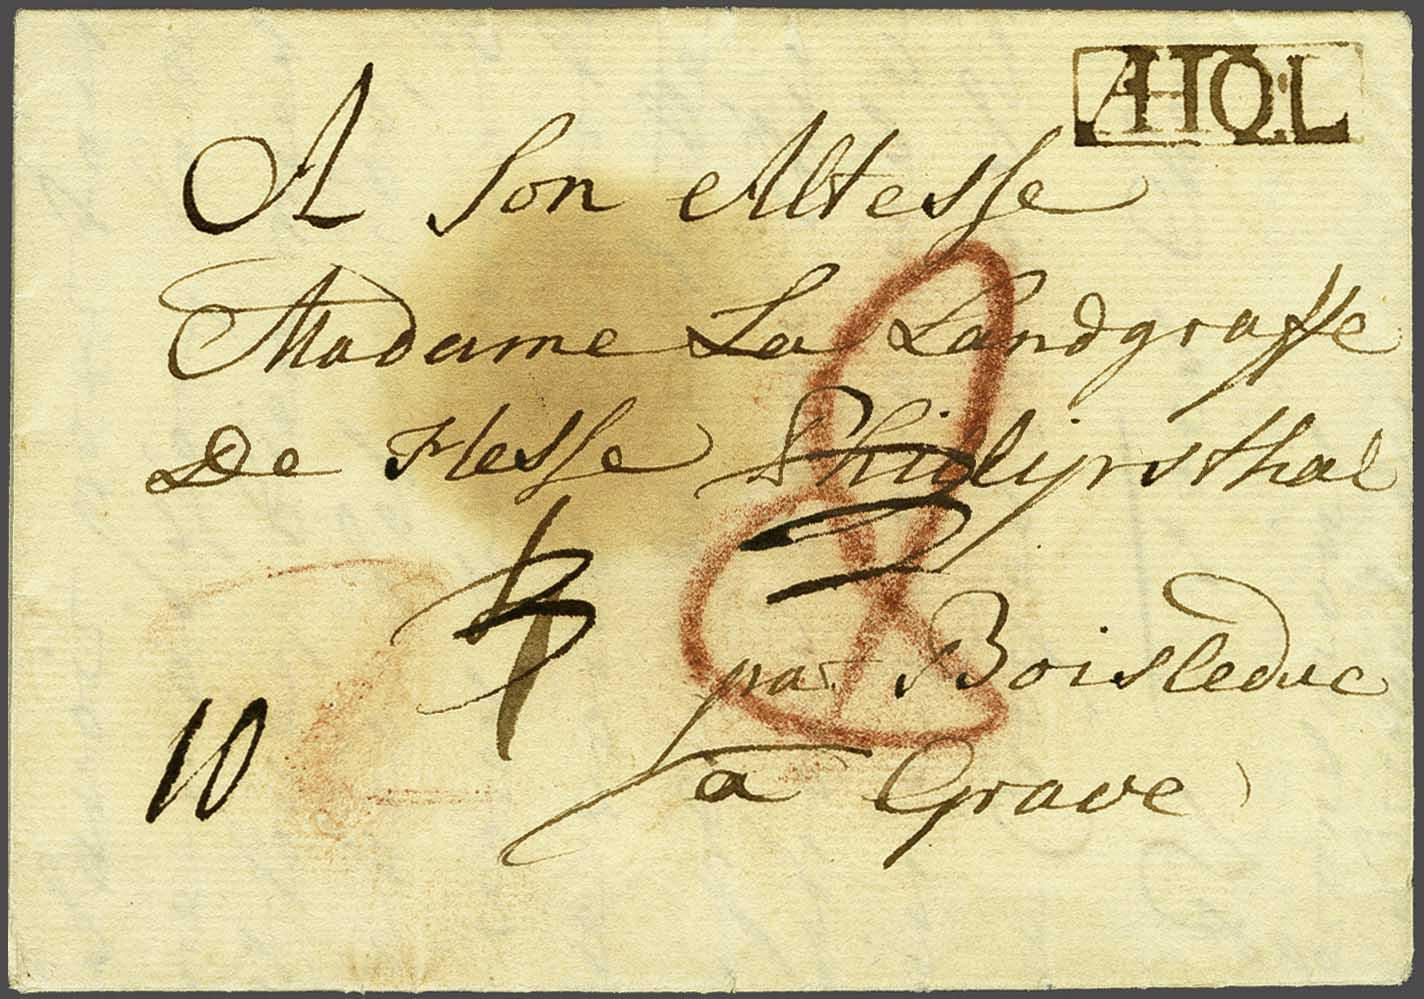 Lot 1700 - Netherlands and former colonies Netherlands -  Corinphila Veilingen Auction 245-246 Day 3 - Netherlands and former colonies - Single lots, Collections and lots, Boxes and literature